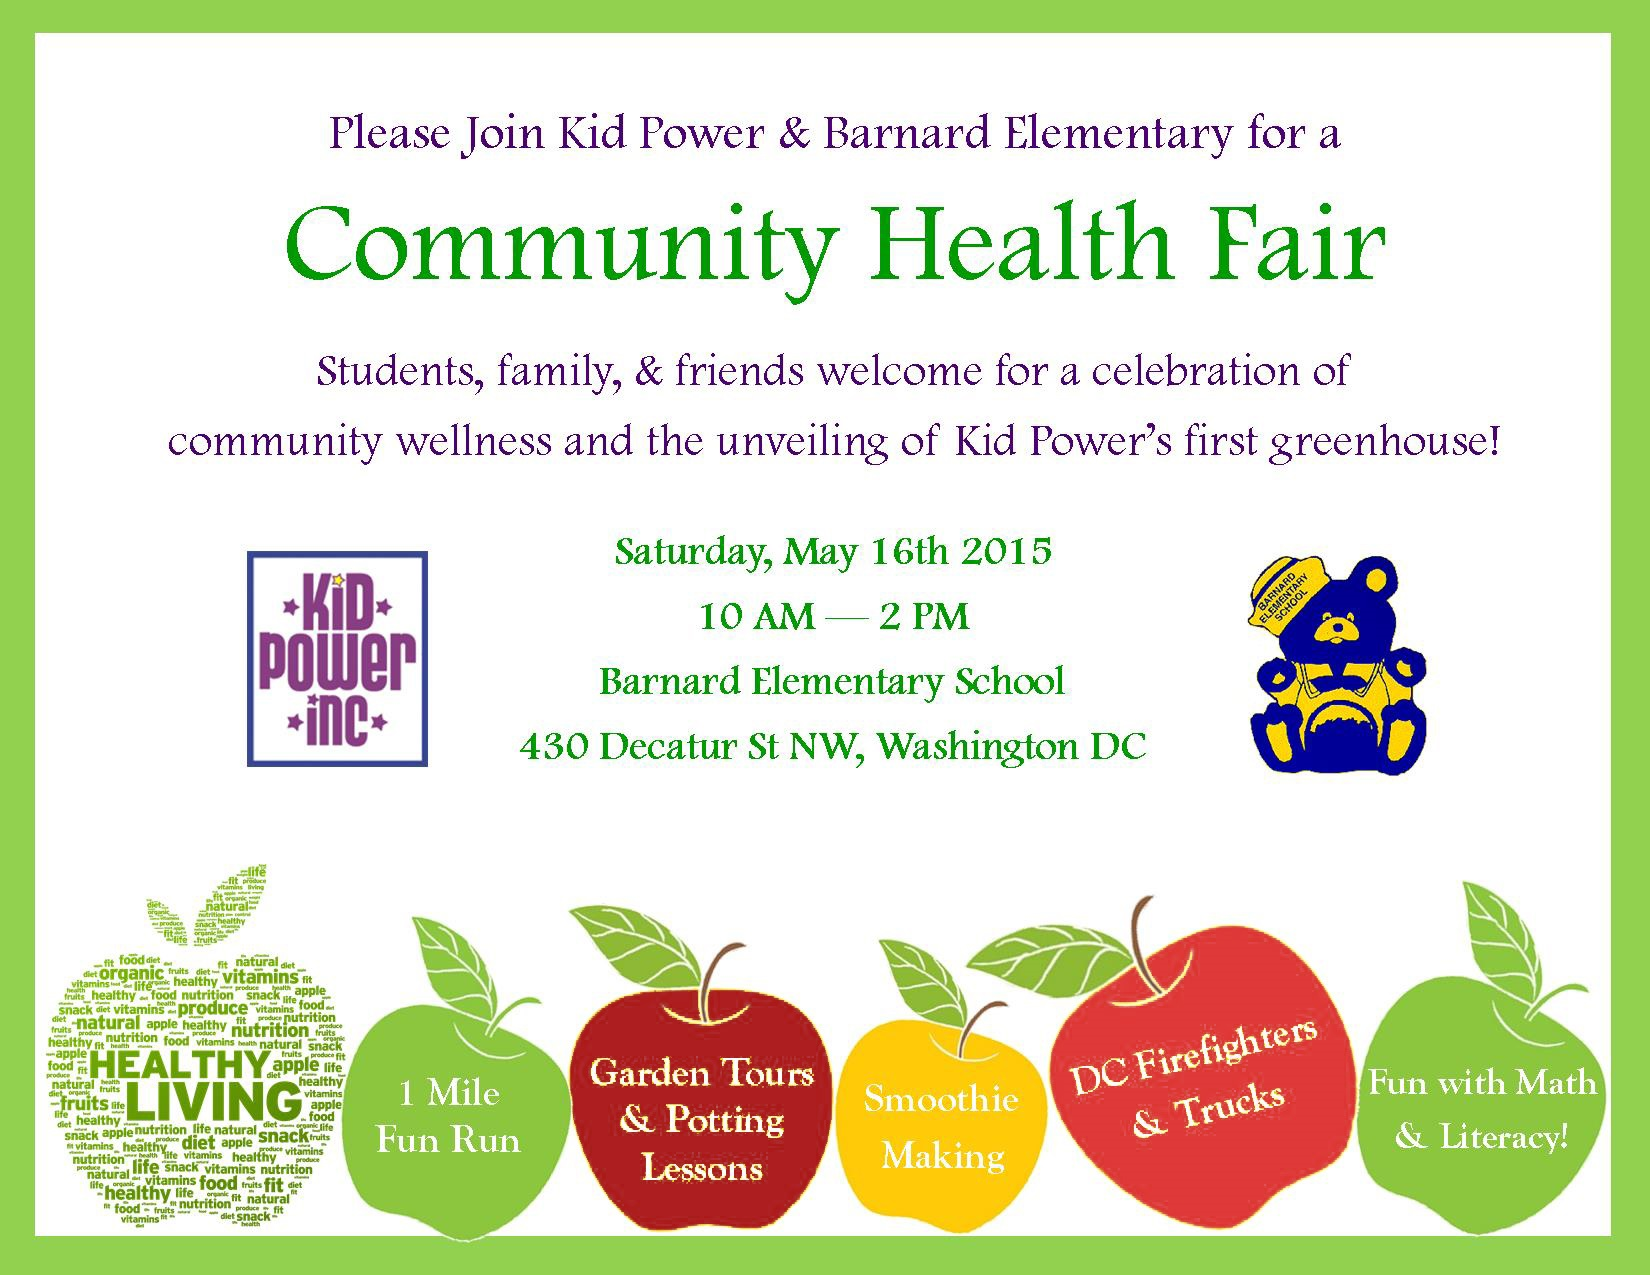 Kid_Power_Community_Health_Fair_Invitation.jpg